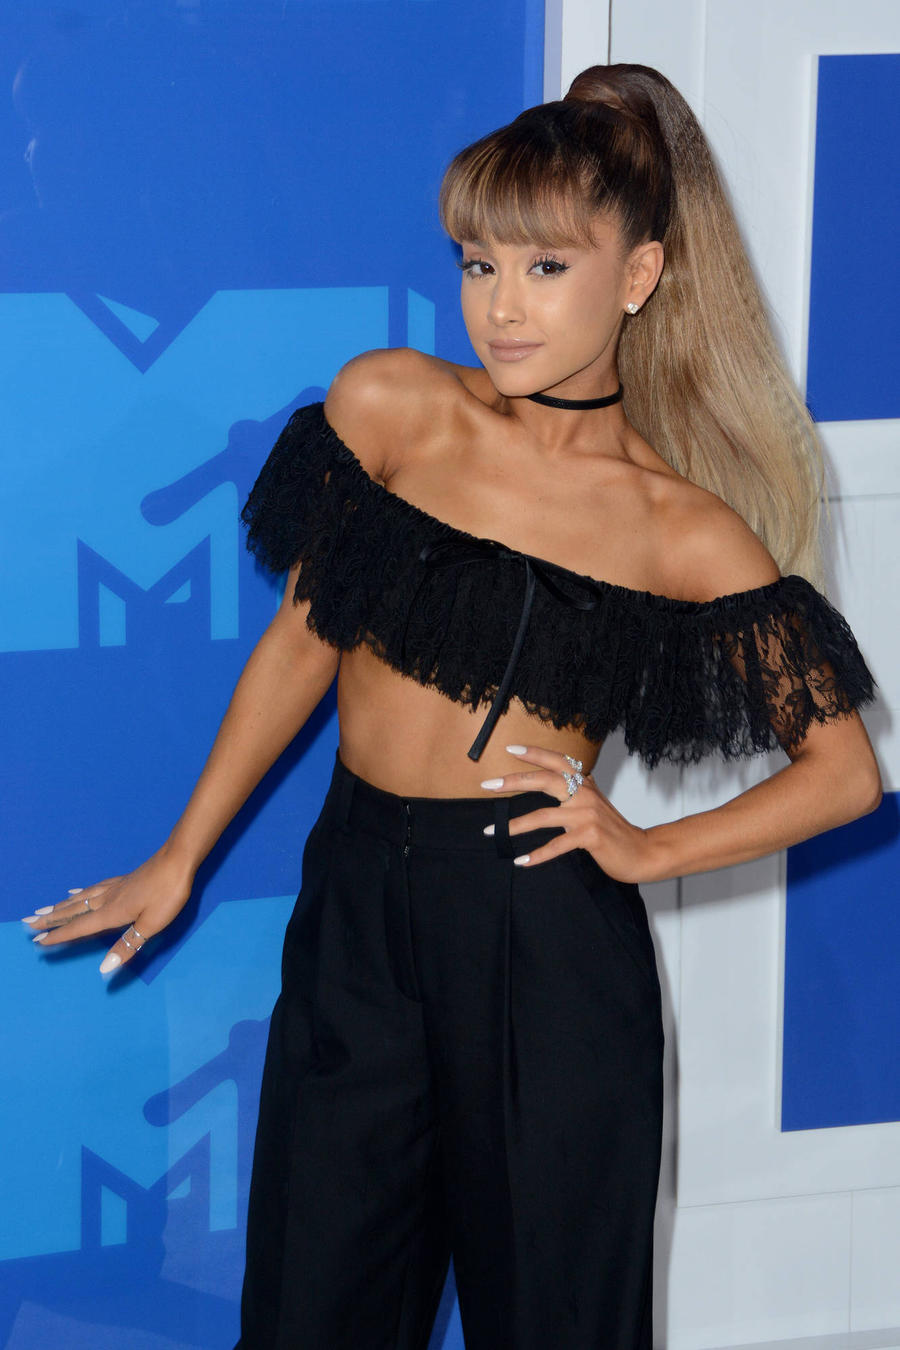 Ariana Grande Shares Raunchy Meaning Of Side To Side